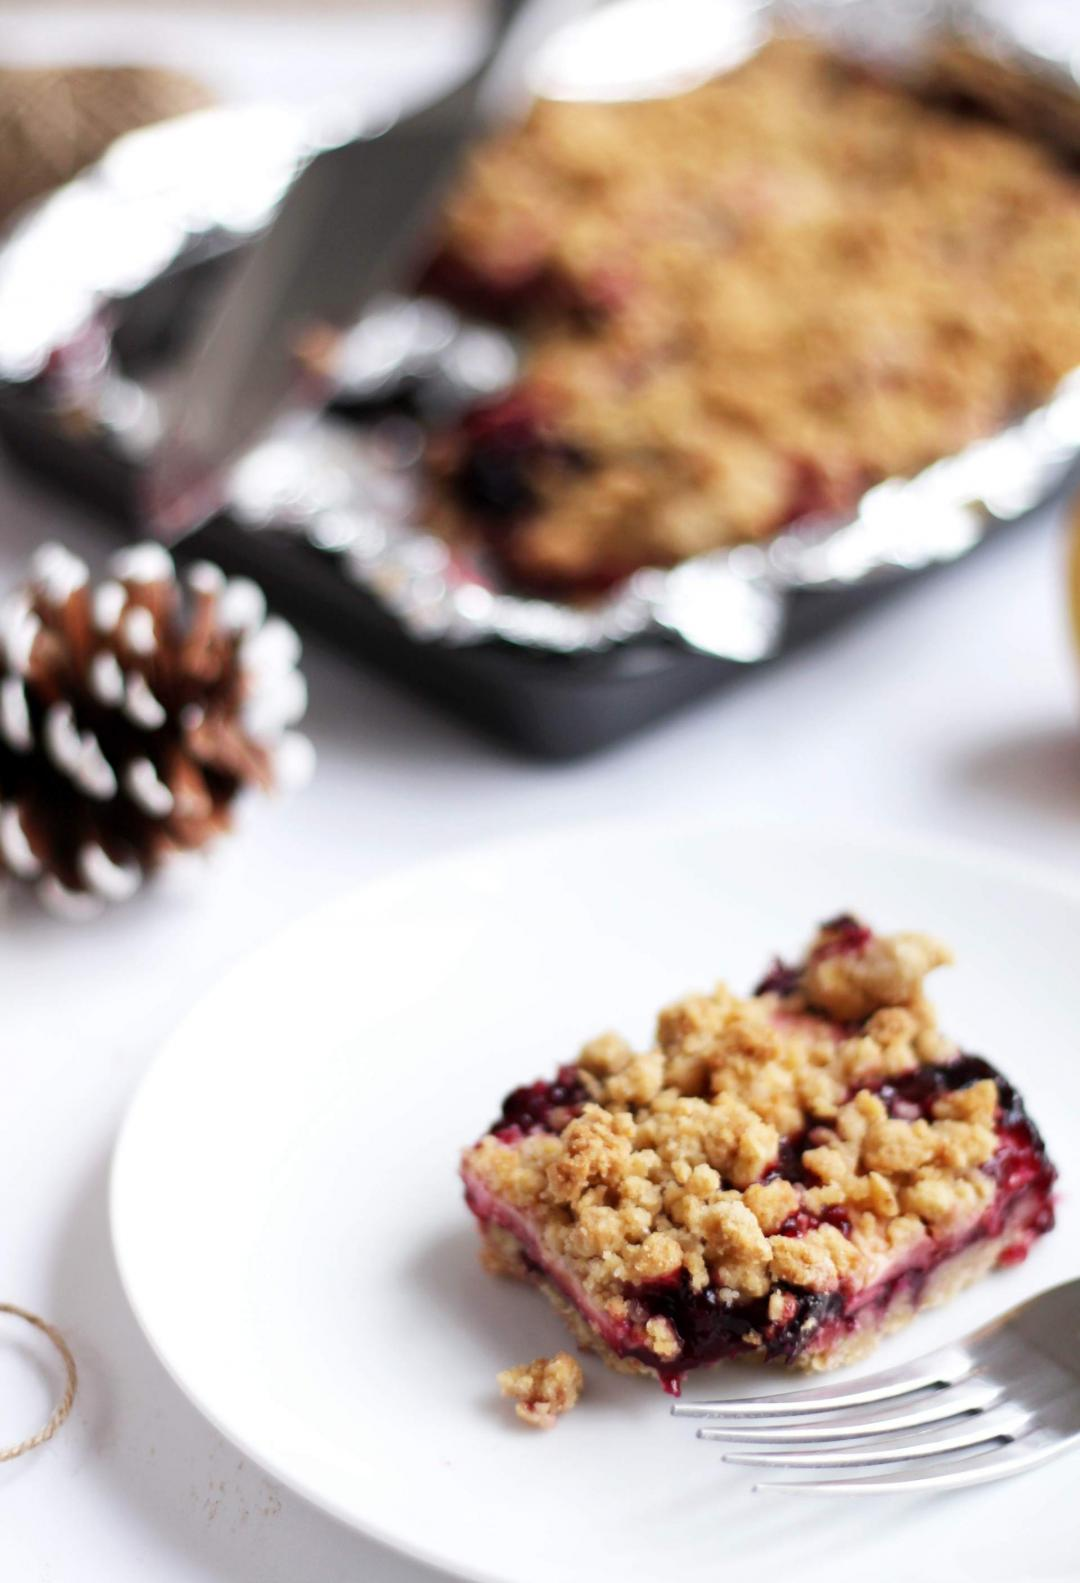 easy-apple-blackberry-blueberry-crumble-recipe-christmas-winter-baking-4